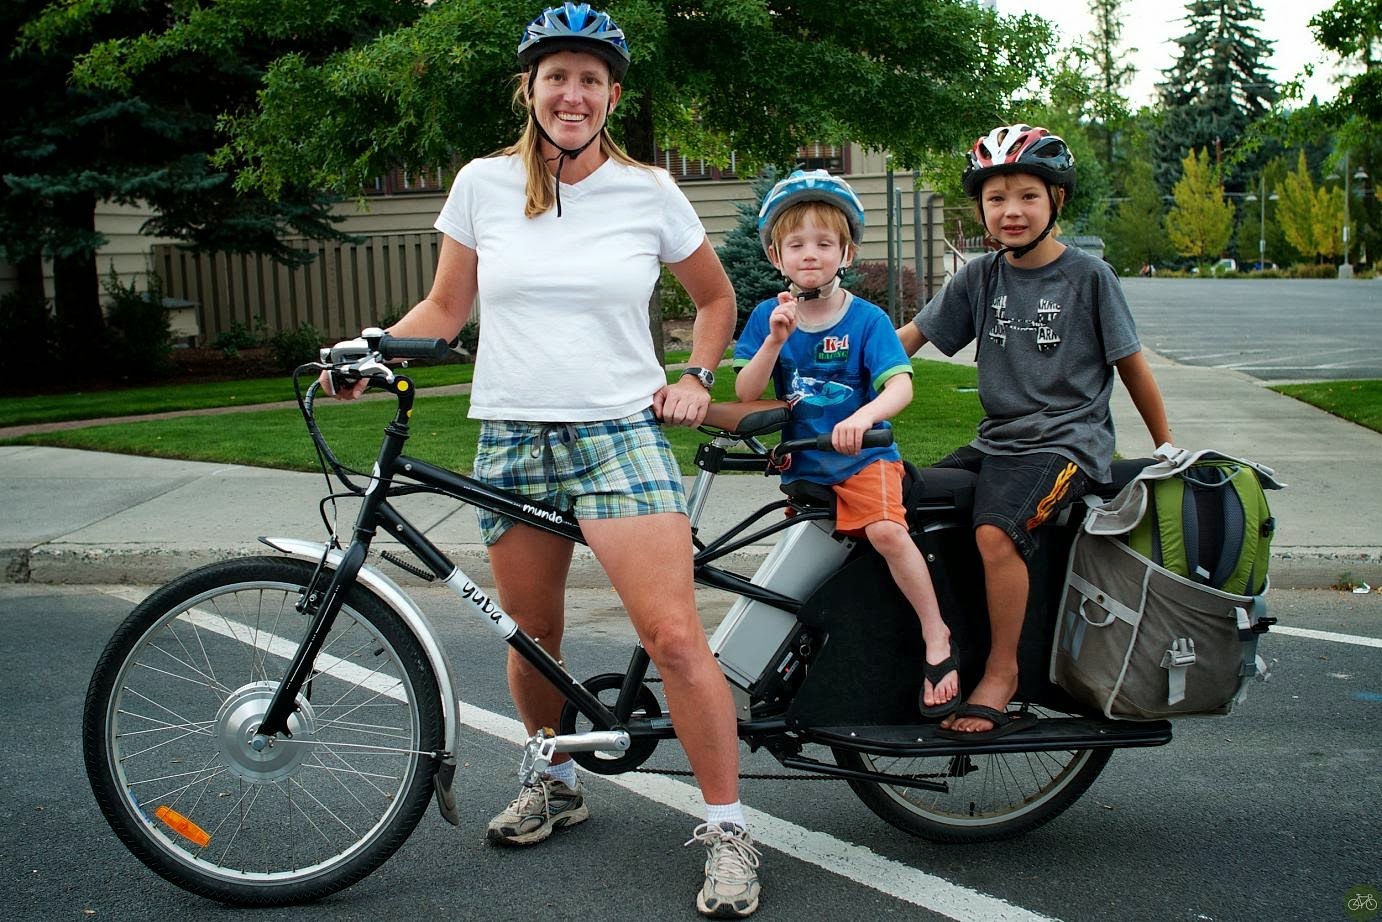 Cargo bikes are very common means to transport goods or babies!